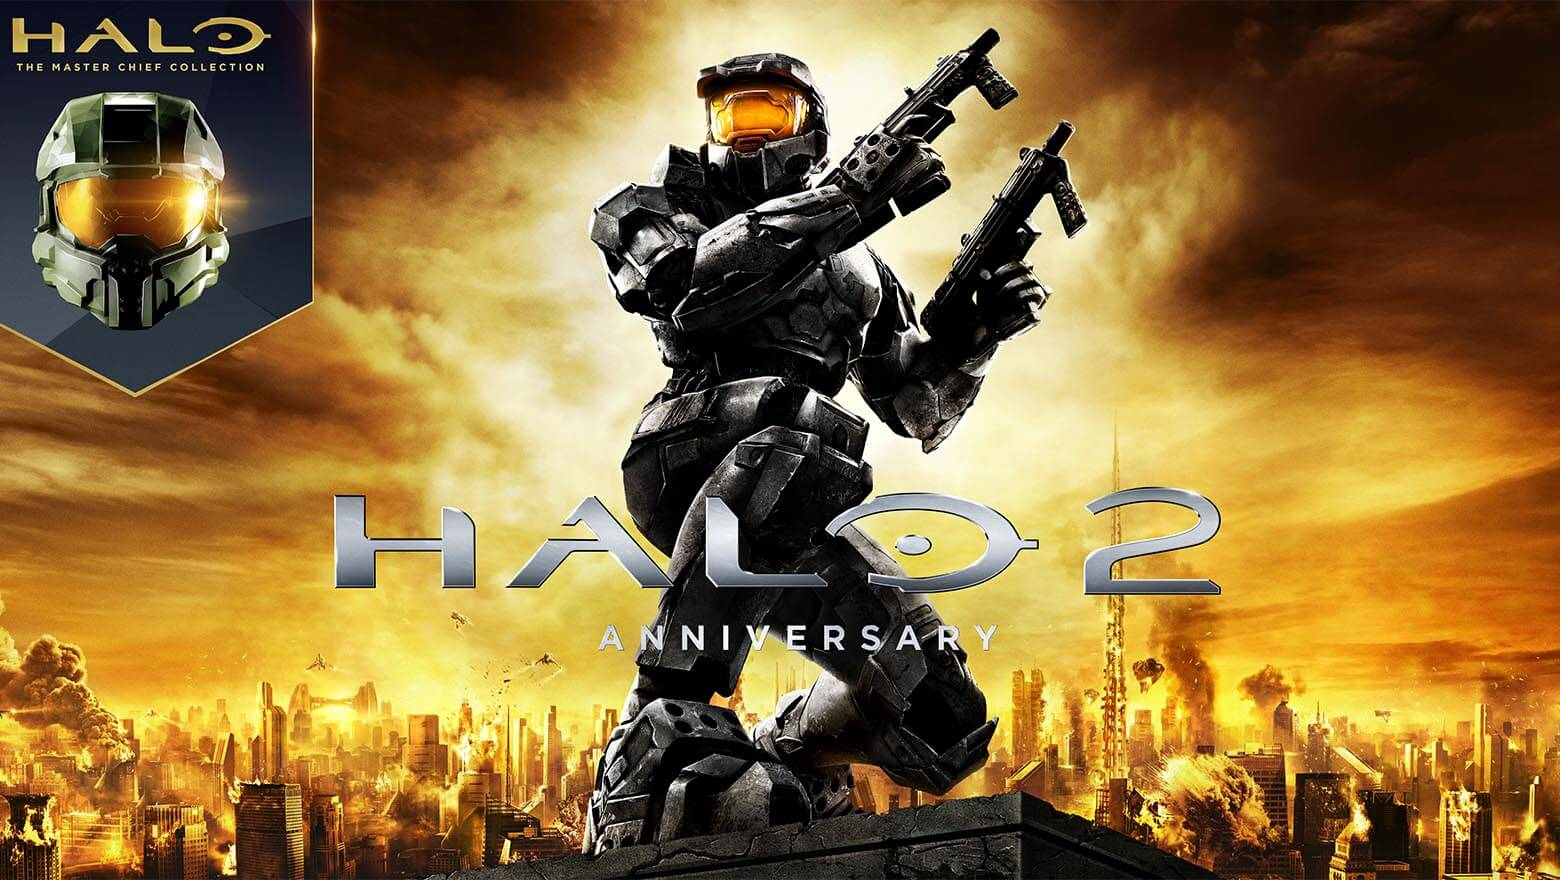 Halo 2 Anniversary pc game download